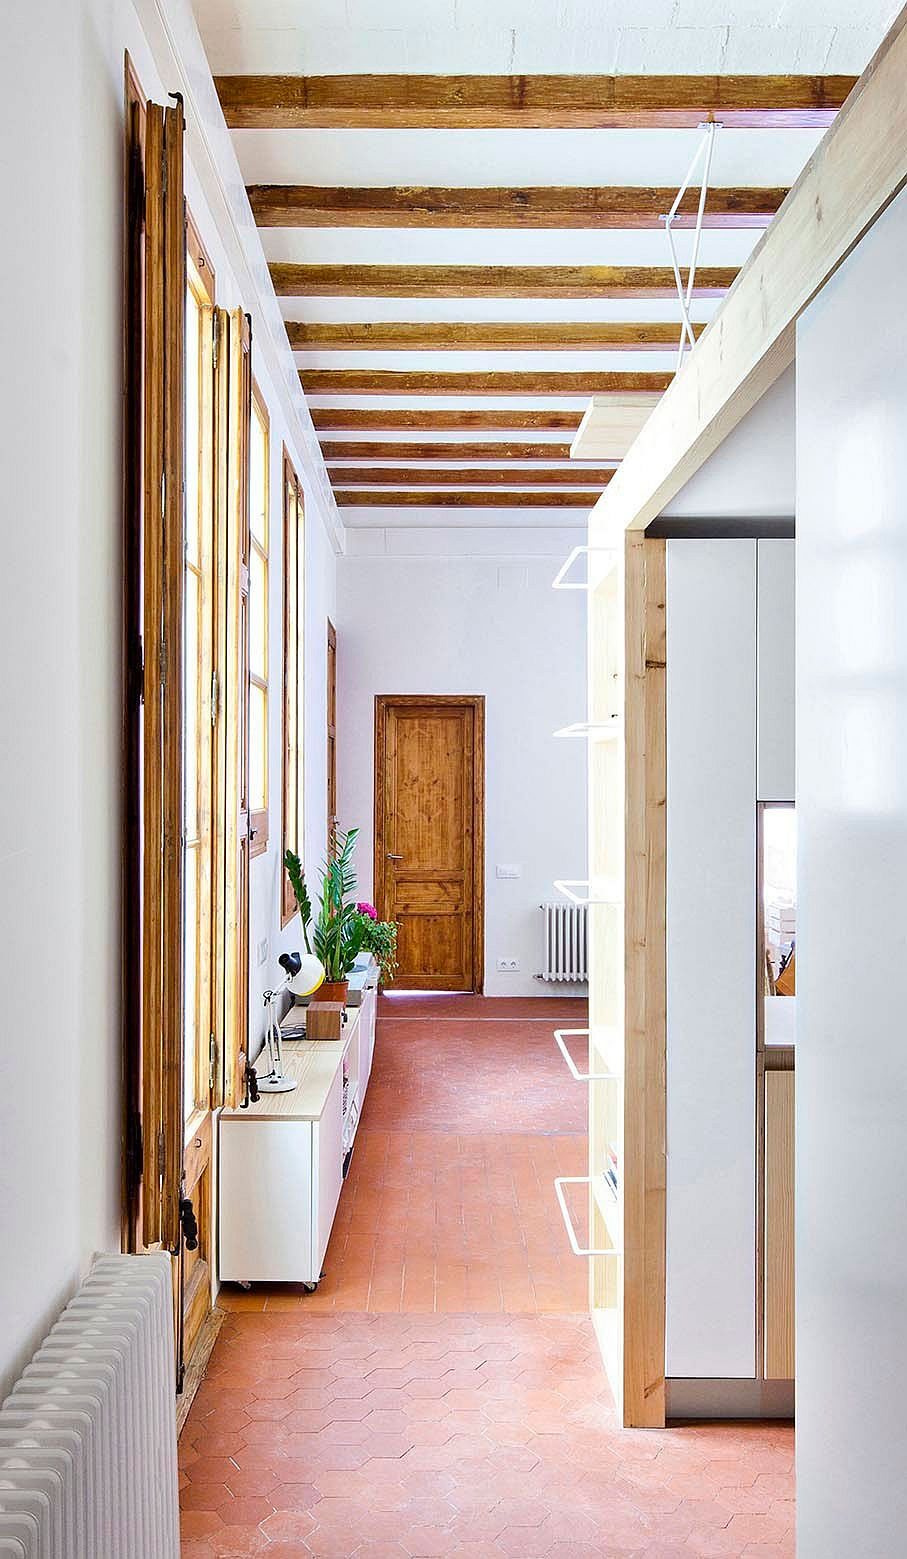 Large windows and exposed wooden beams showcase the past of the apartment